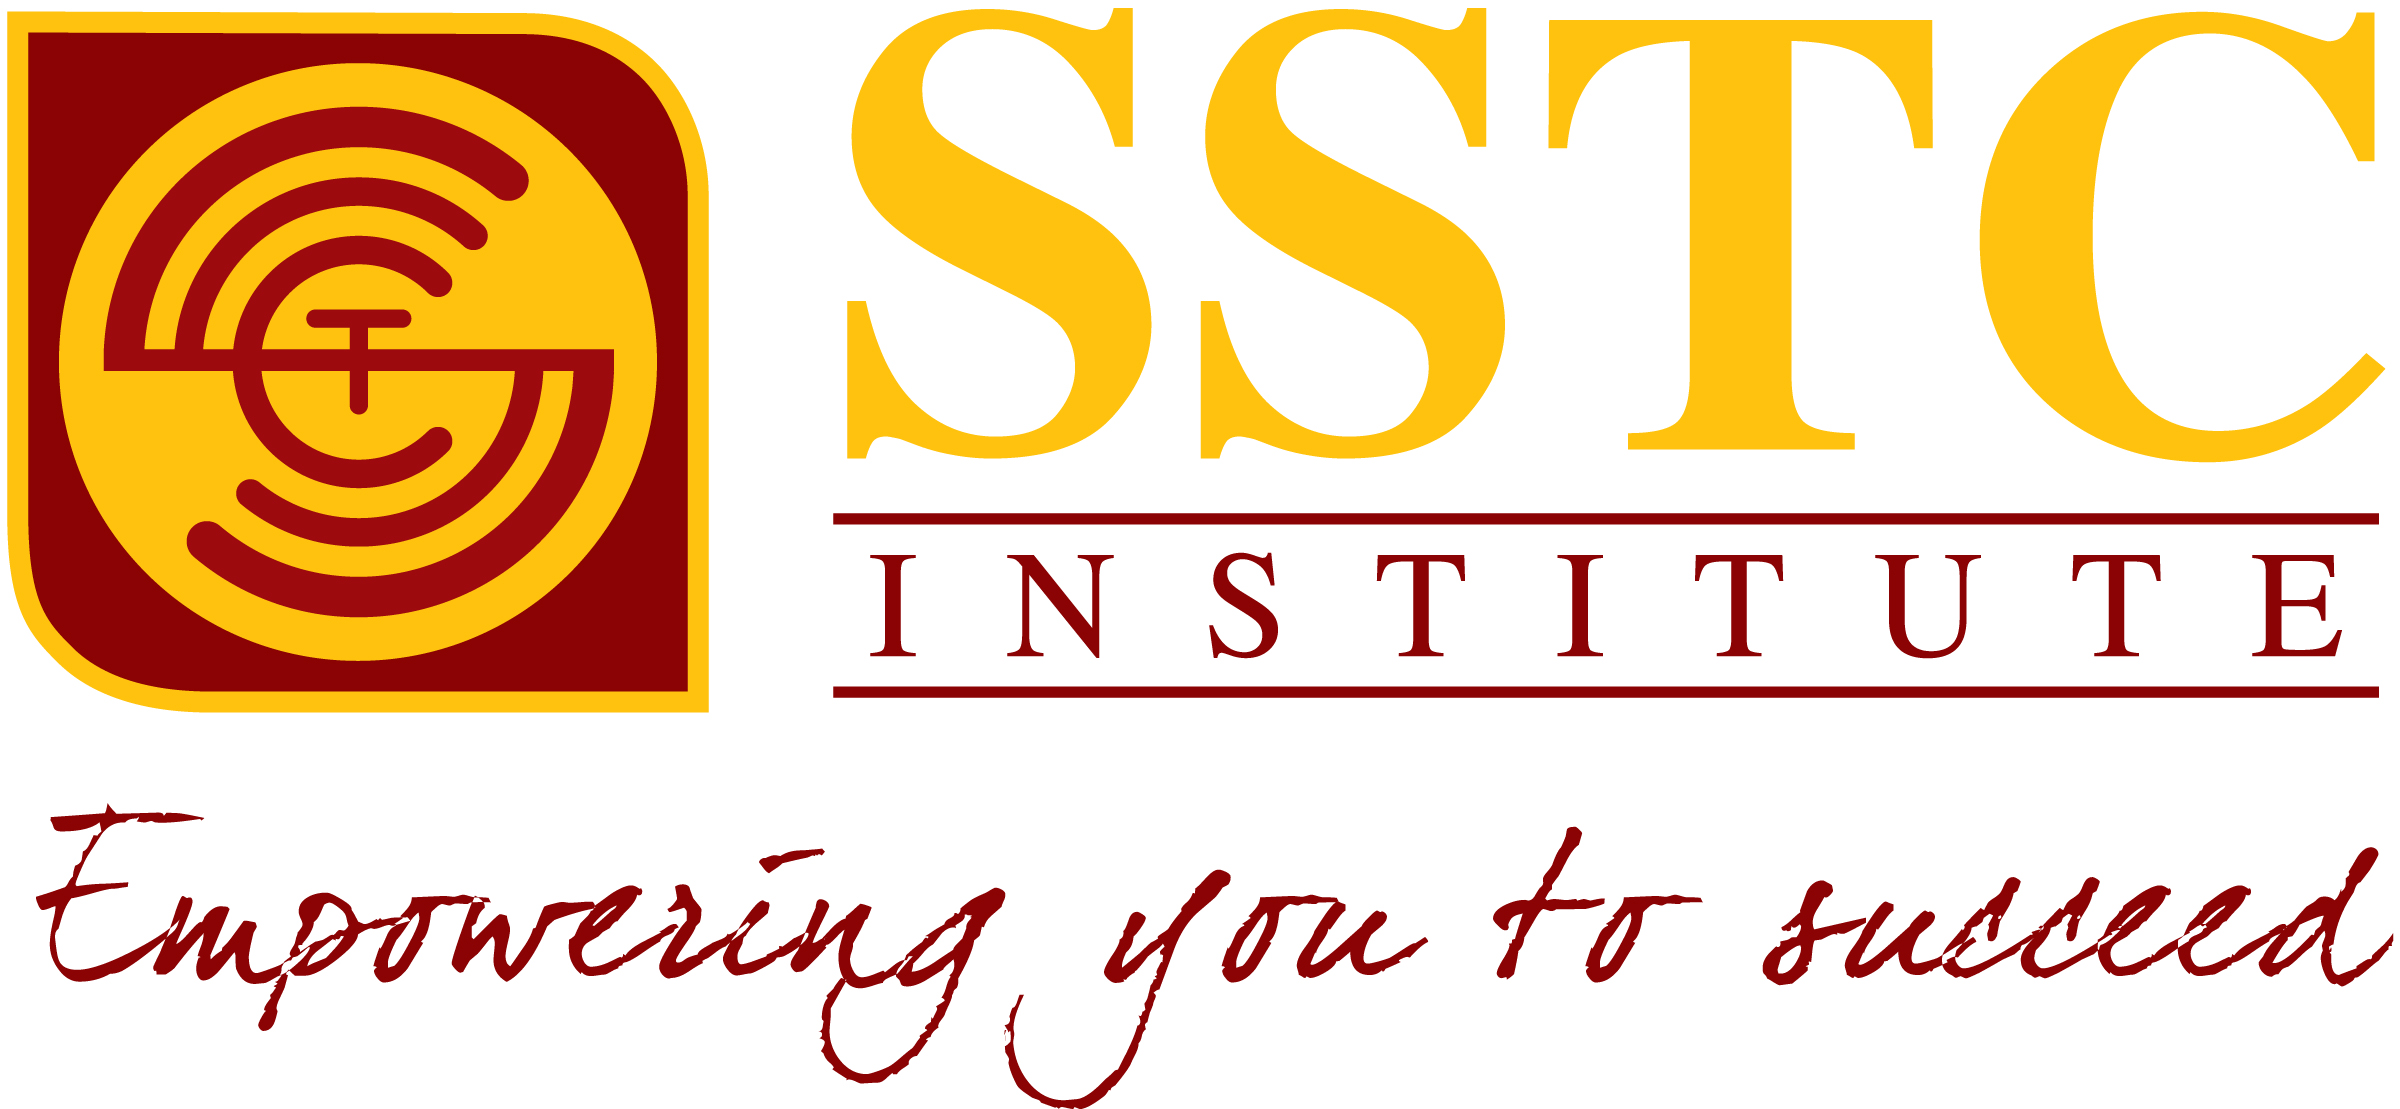 sstc_new_logo(large)_1